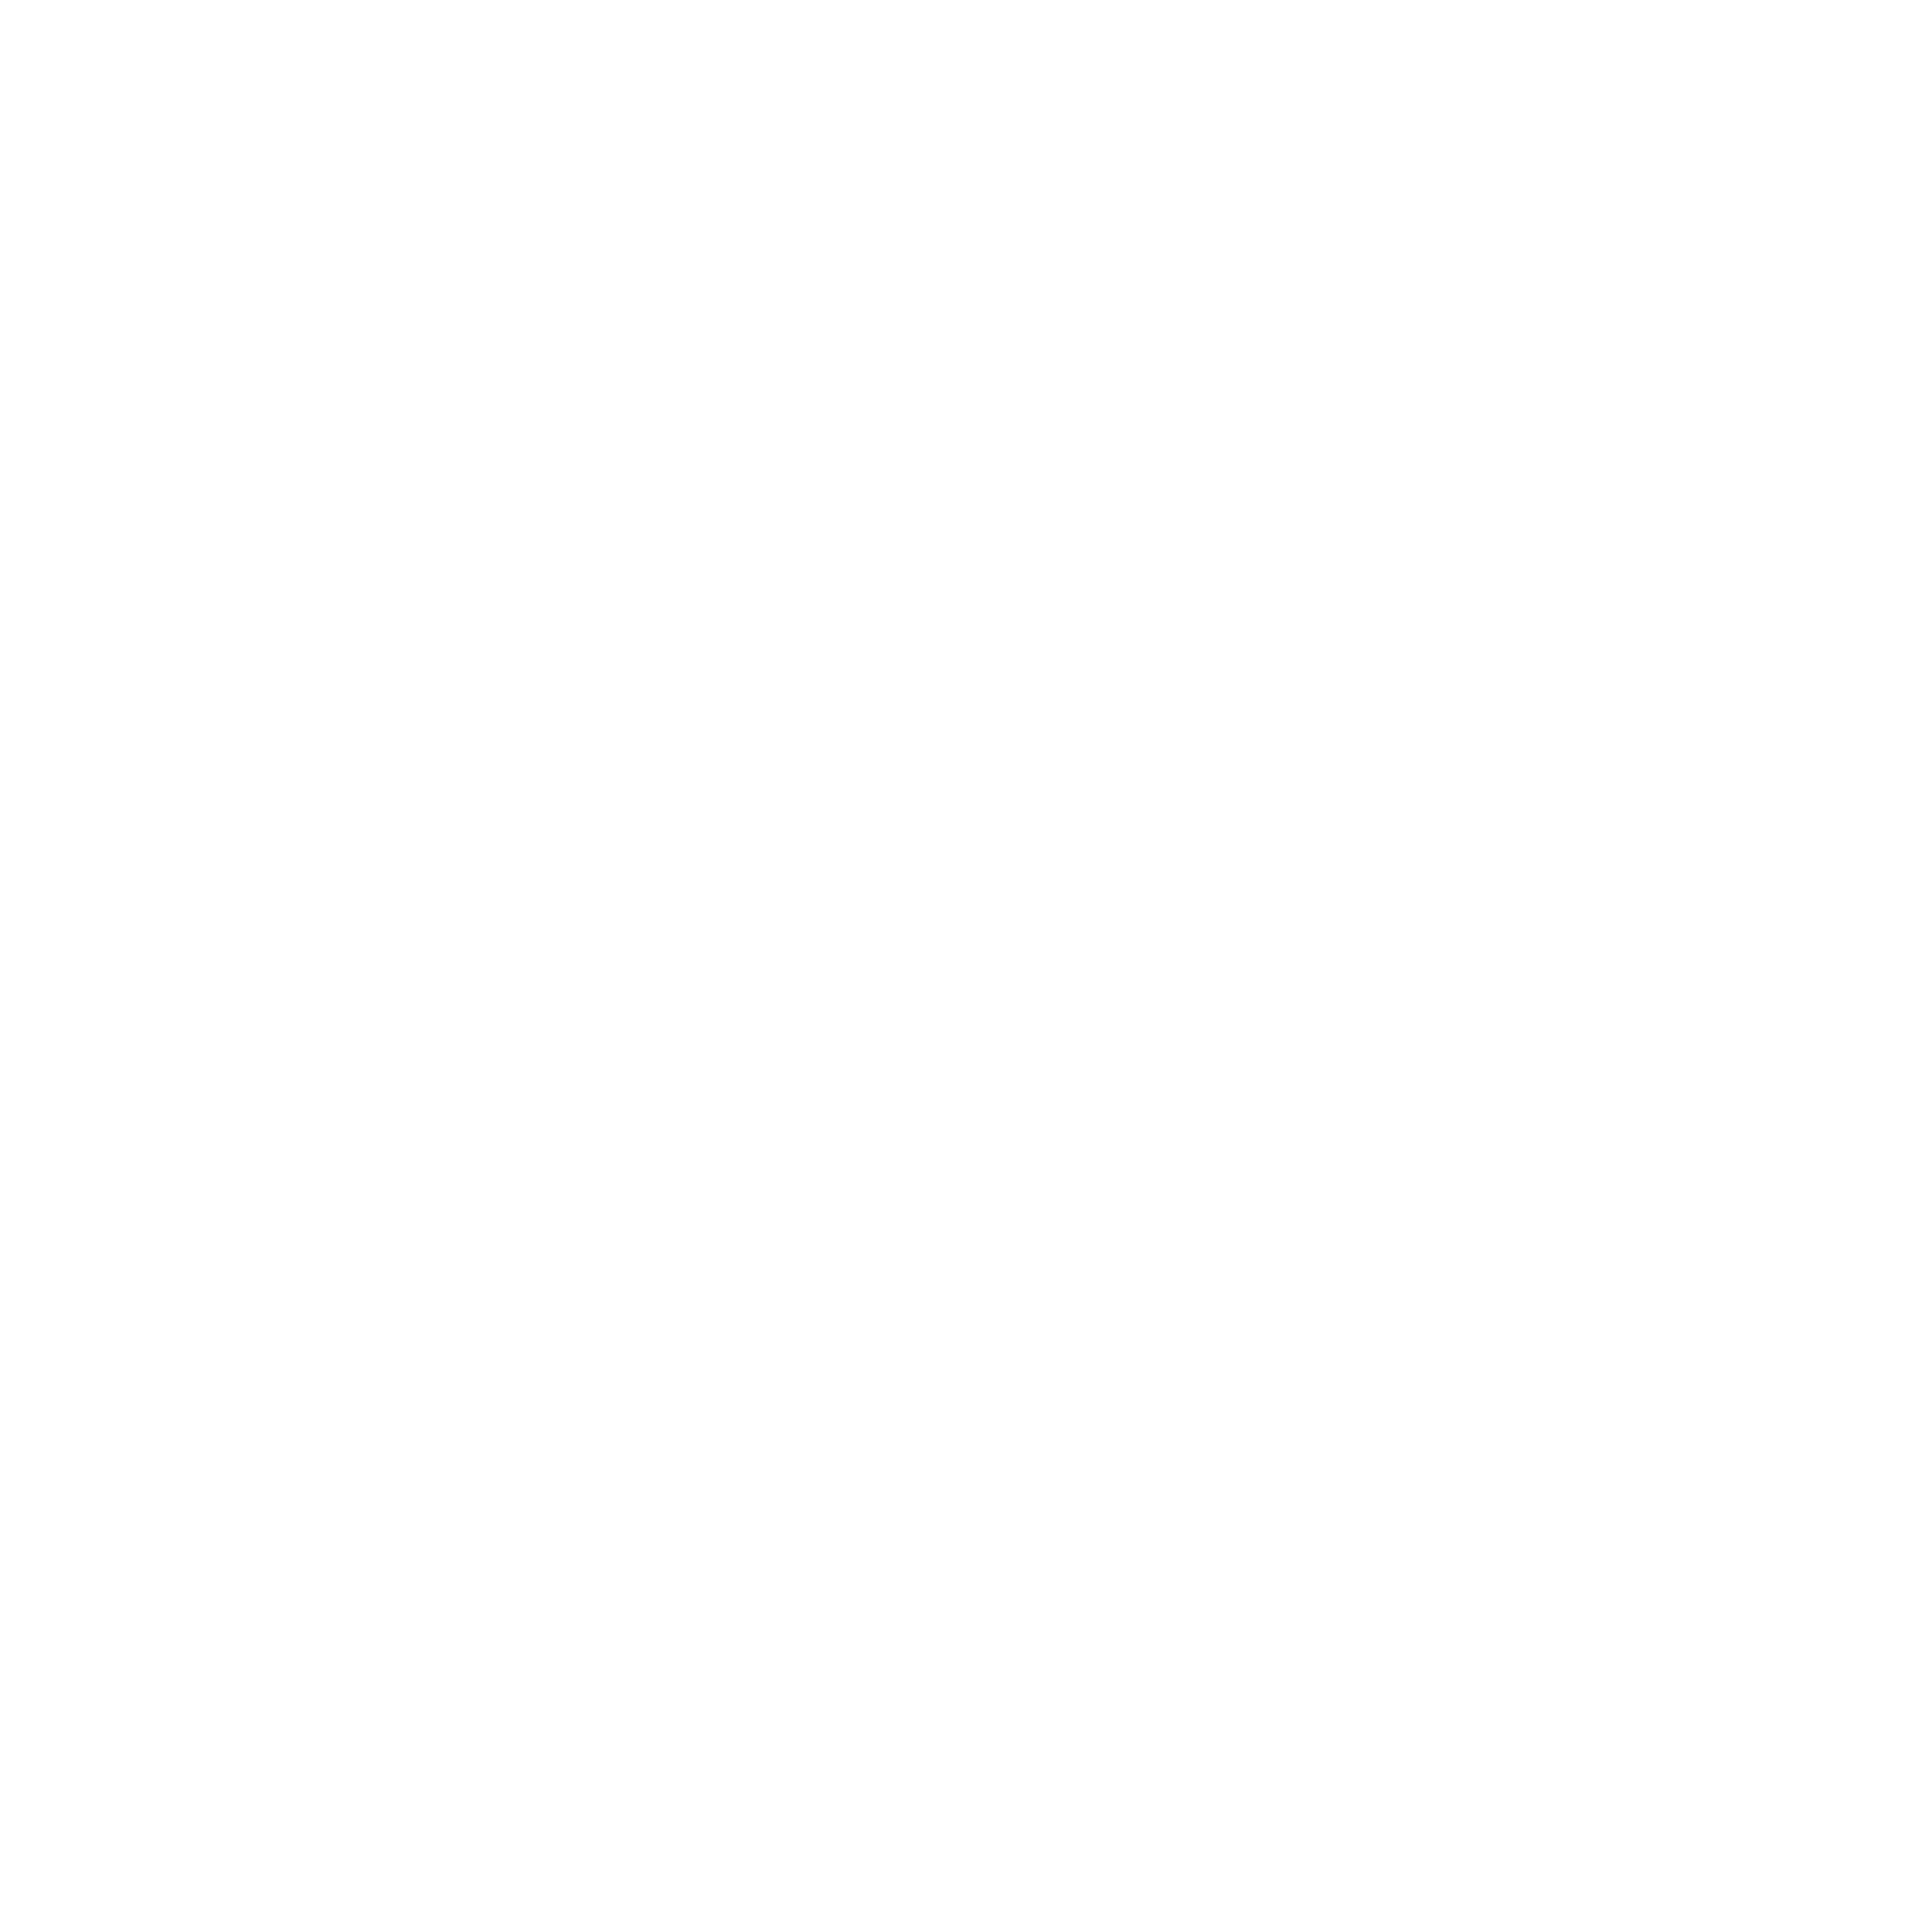 Logo-digitaliza-3